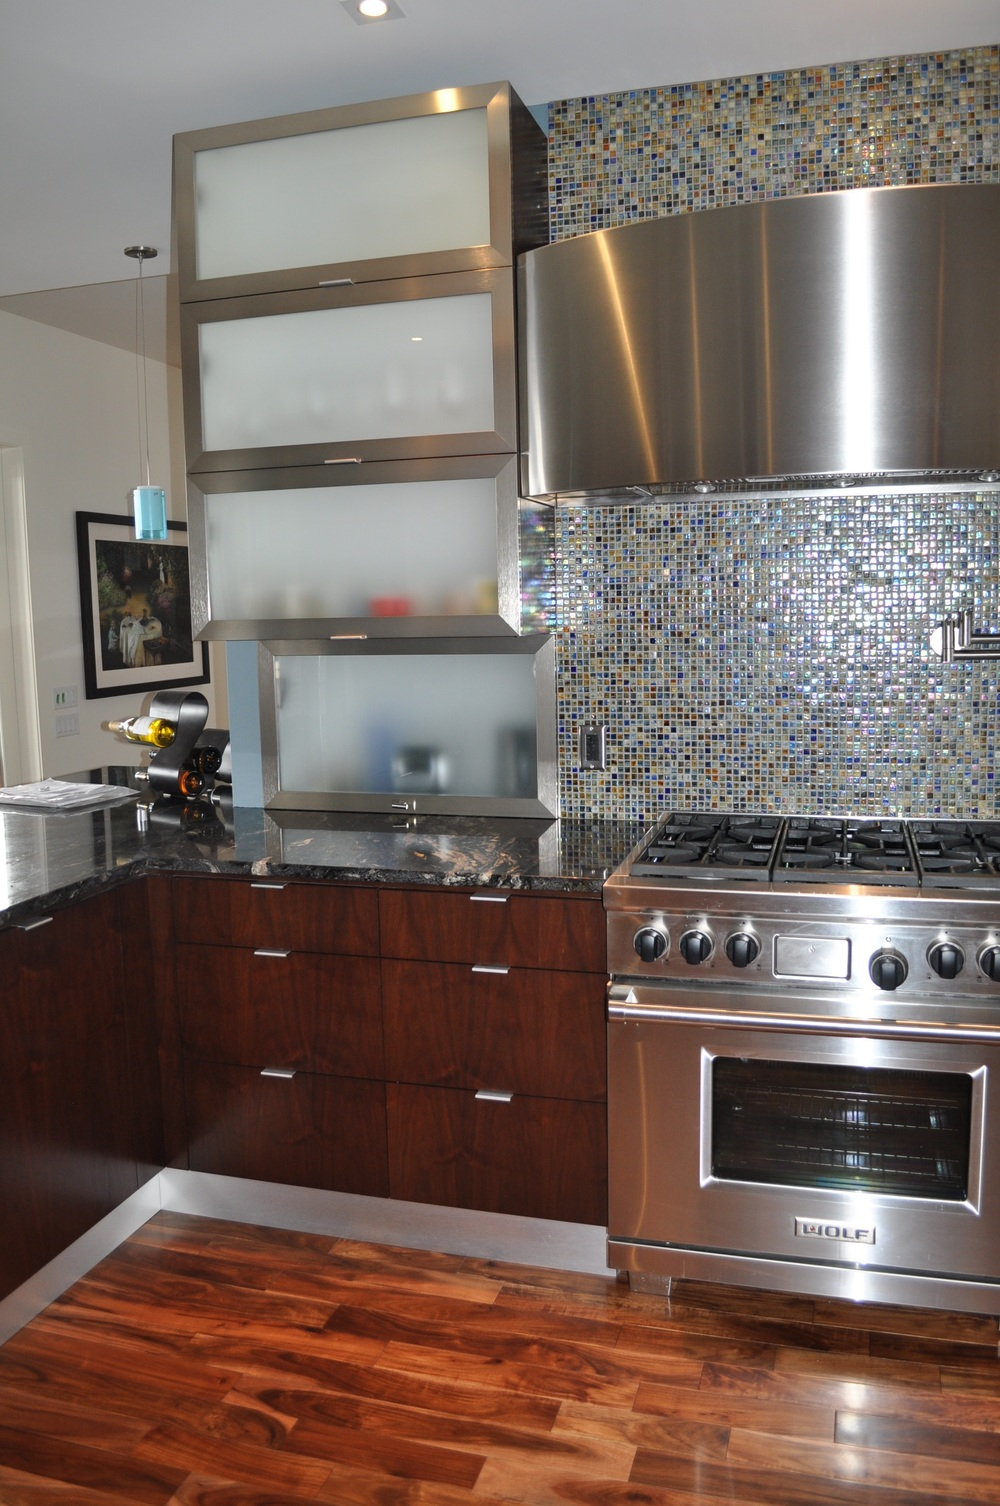 transitional-style-walnut-stainless-steel-kitchen-cabinetry.JPG